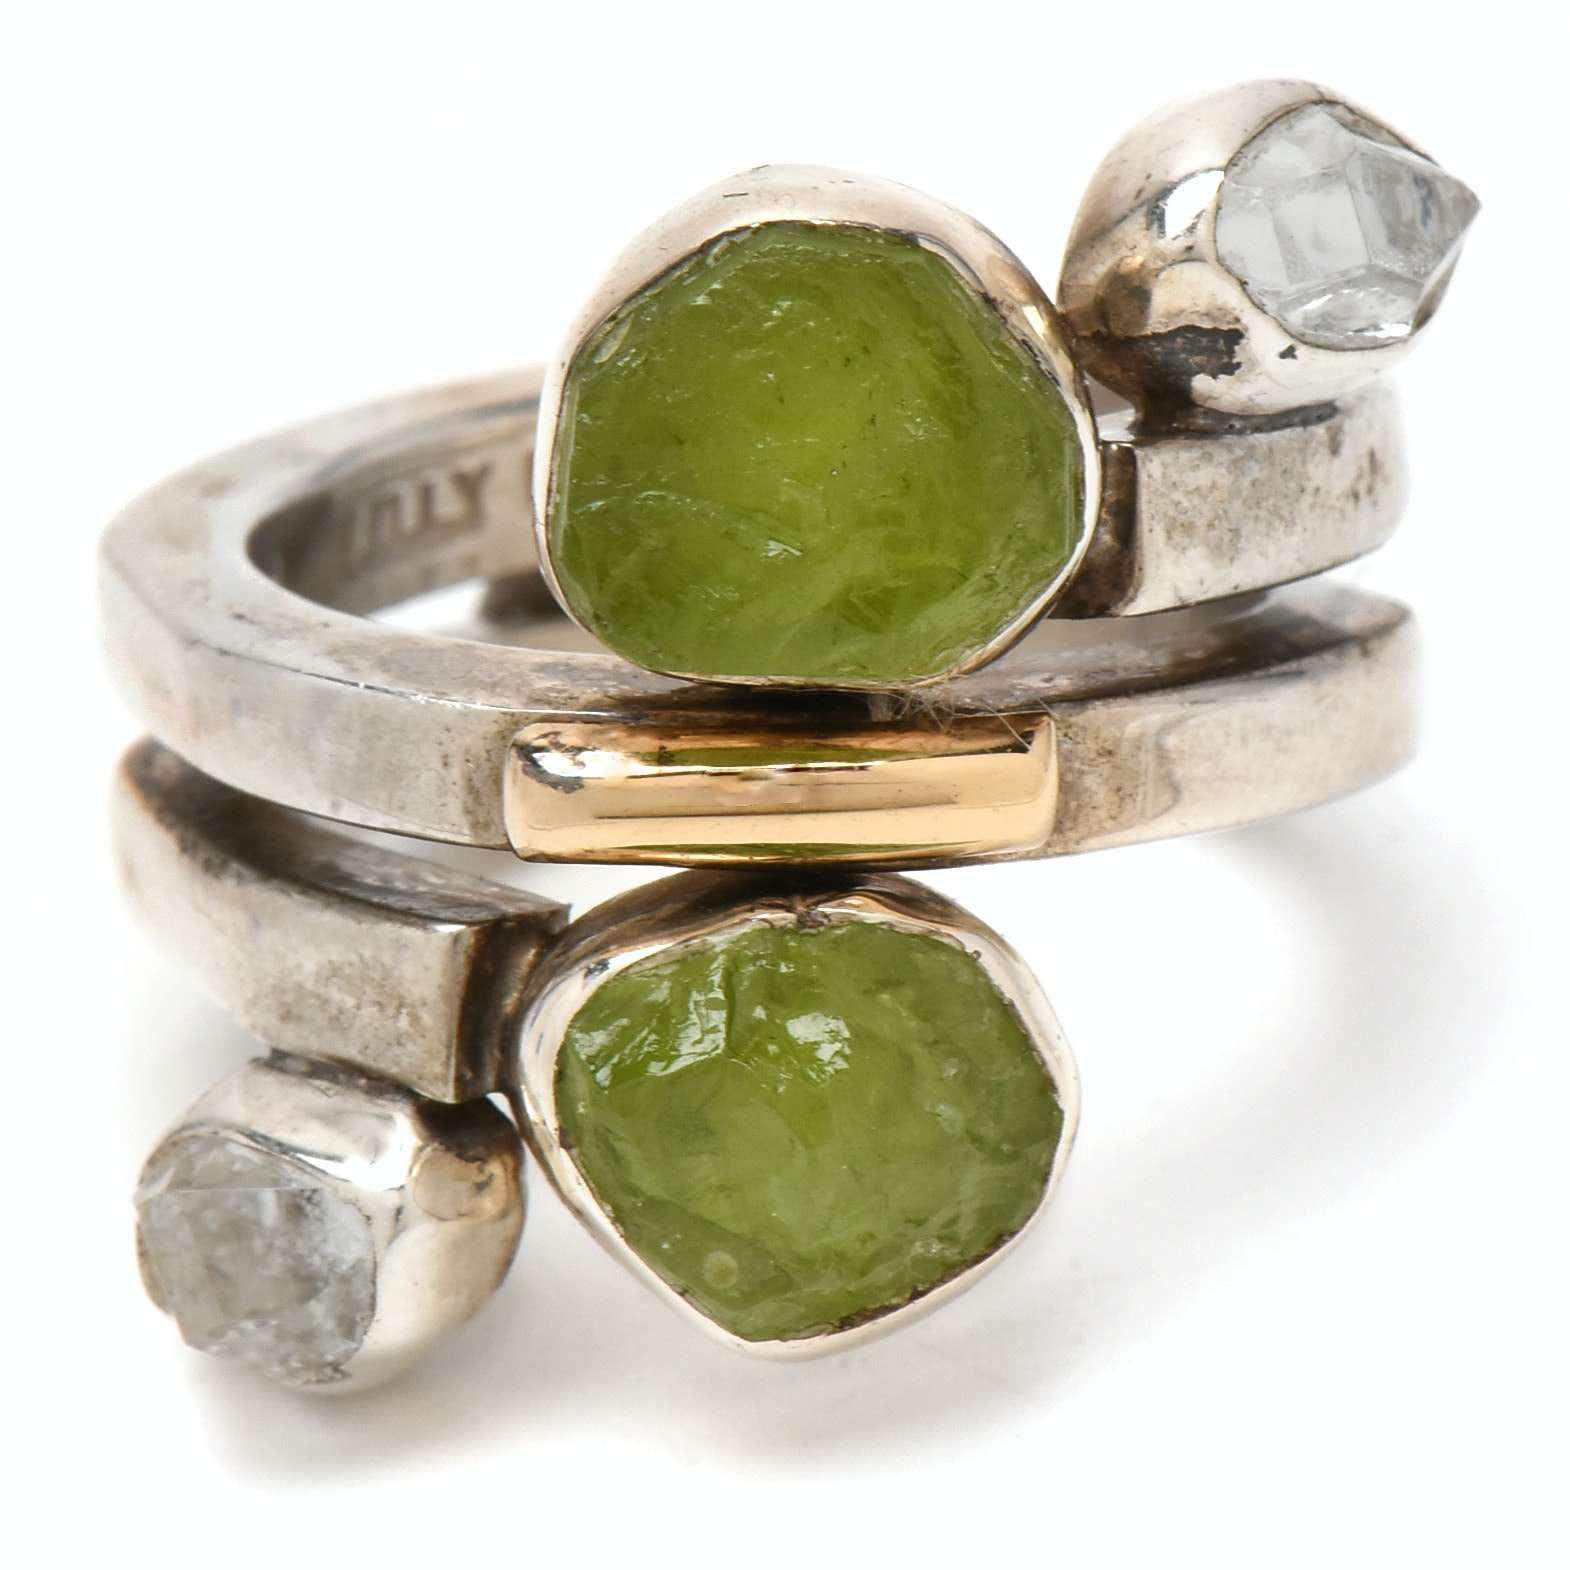 Lilly Barrack Sterling Silver Ring with Peridot and Quartz Stones